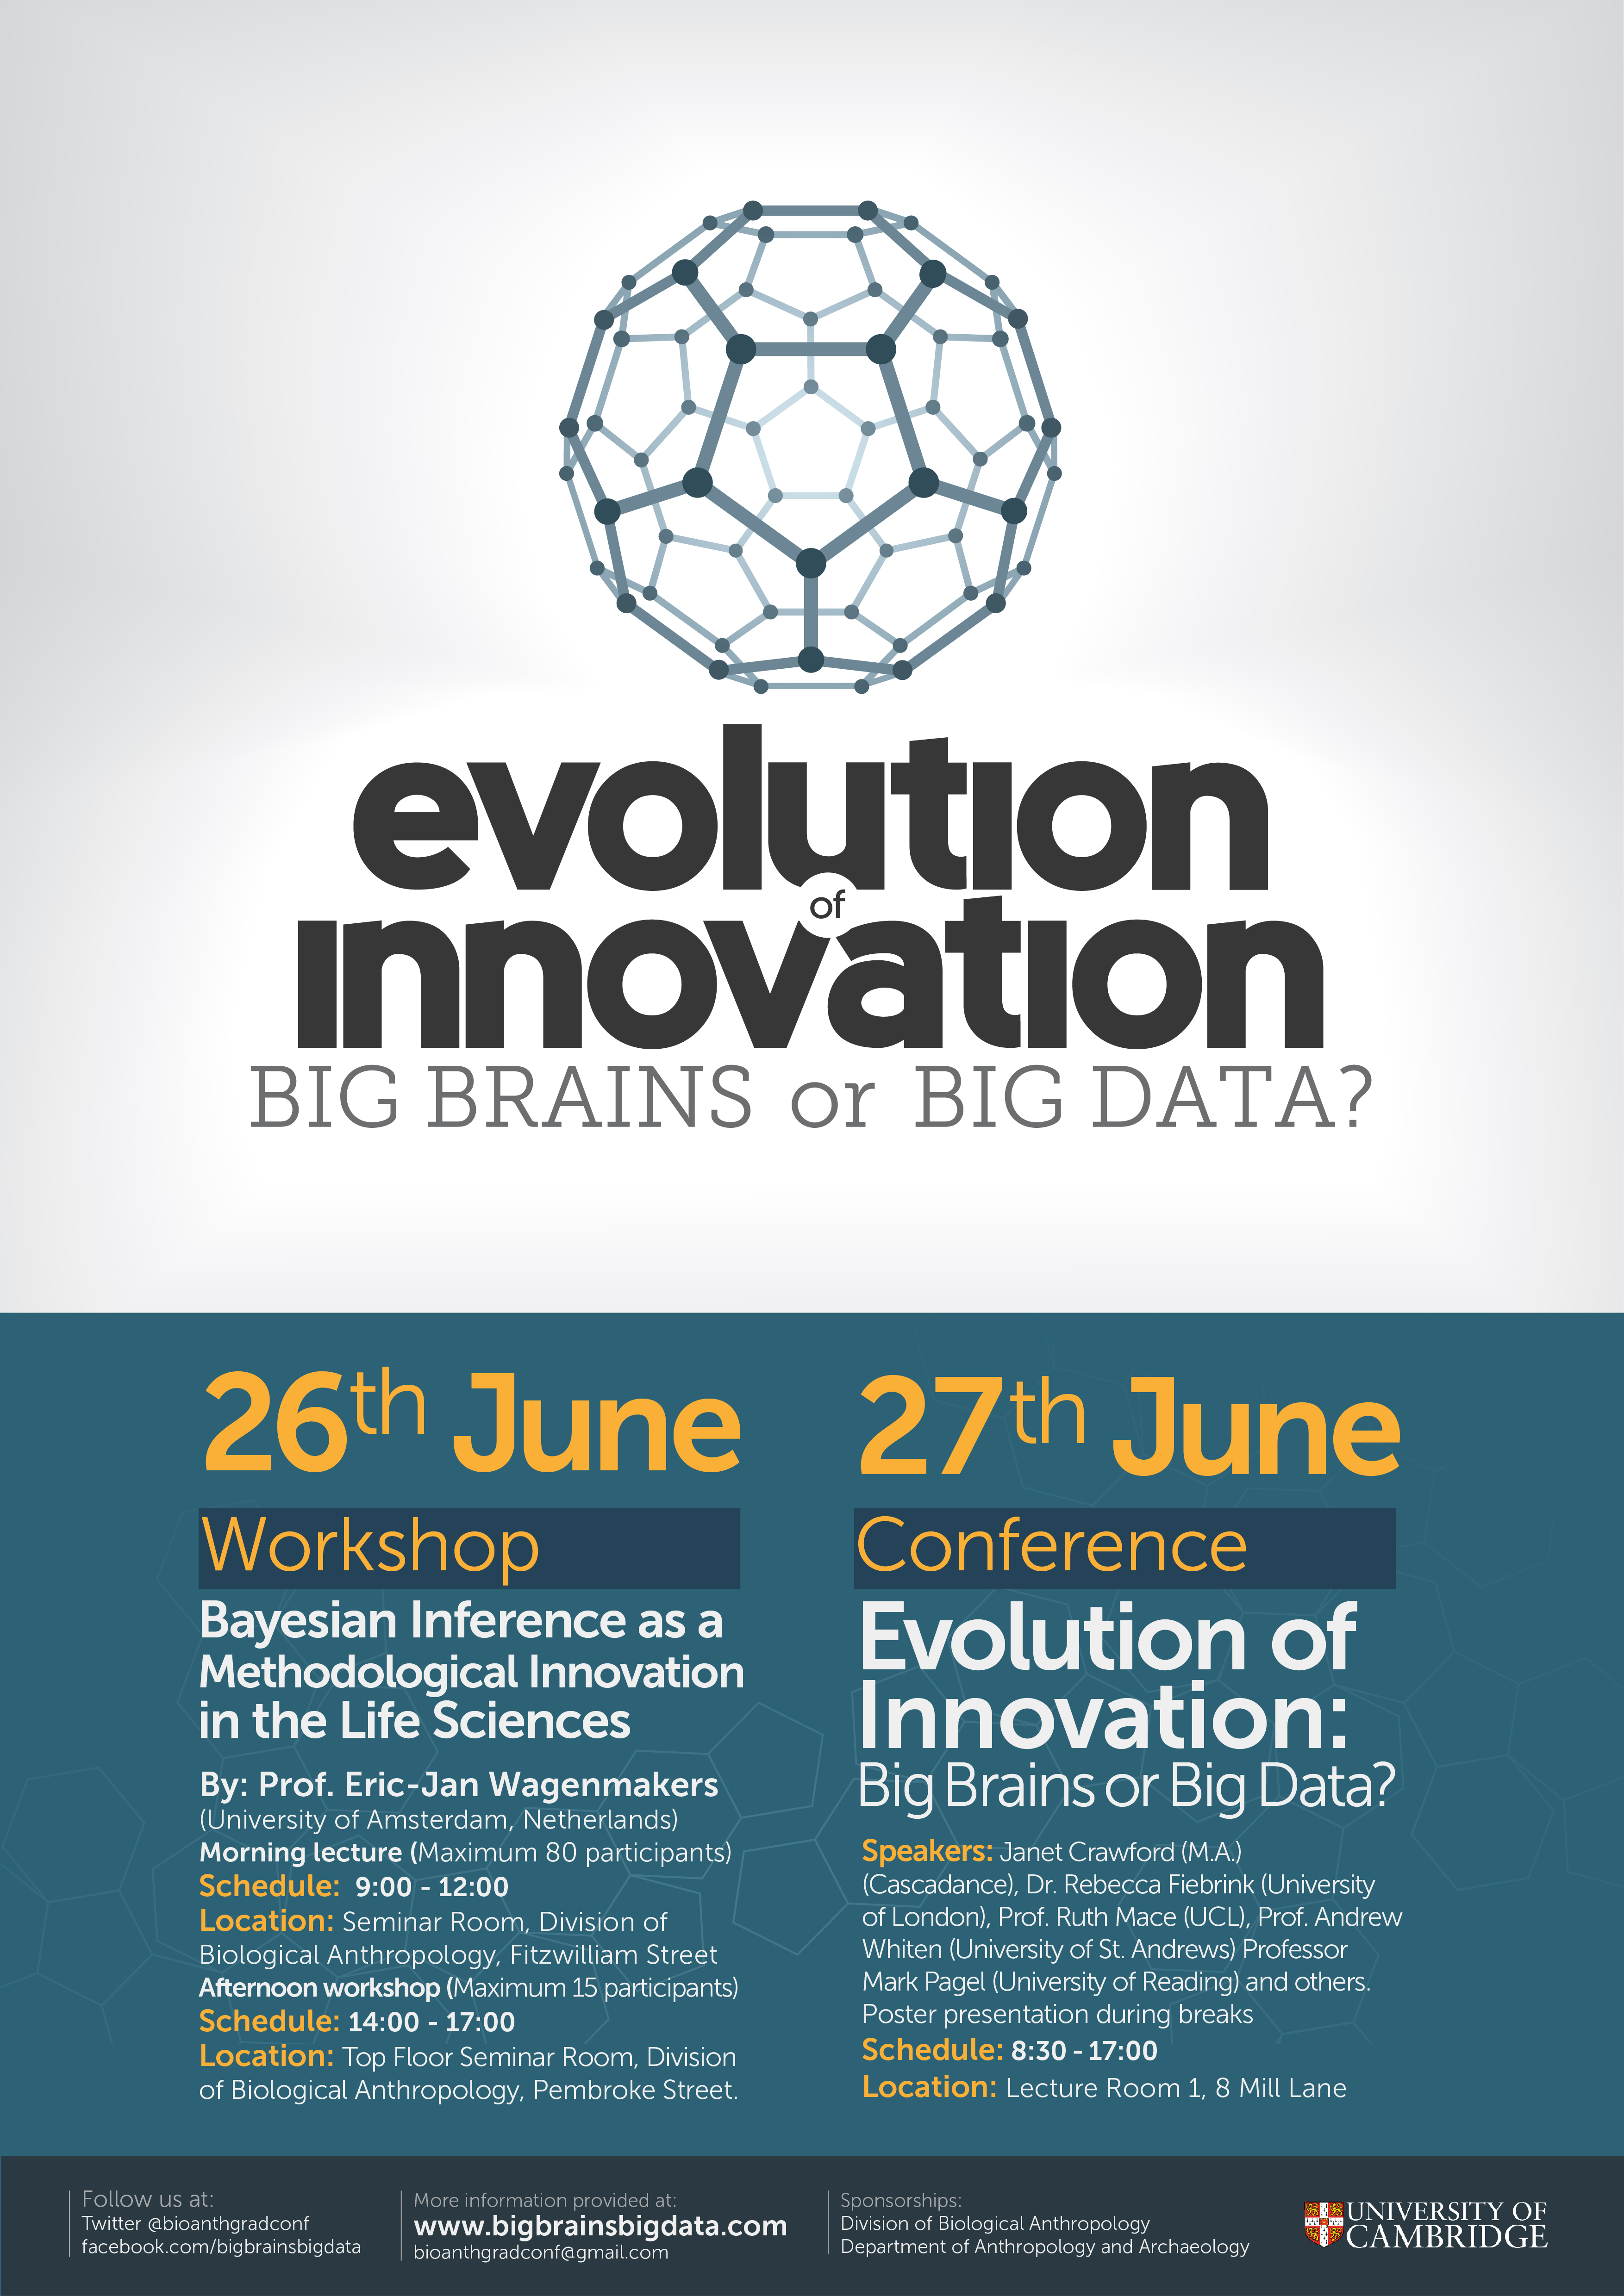 Evolution of Innovation: Big Brains or Big Data